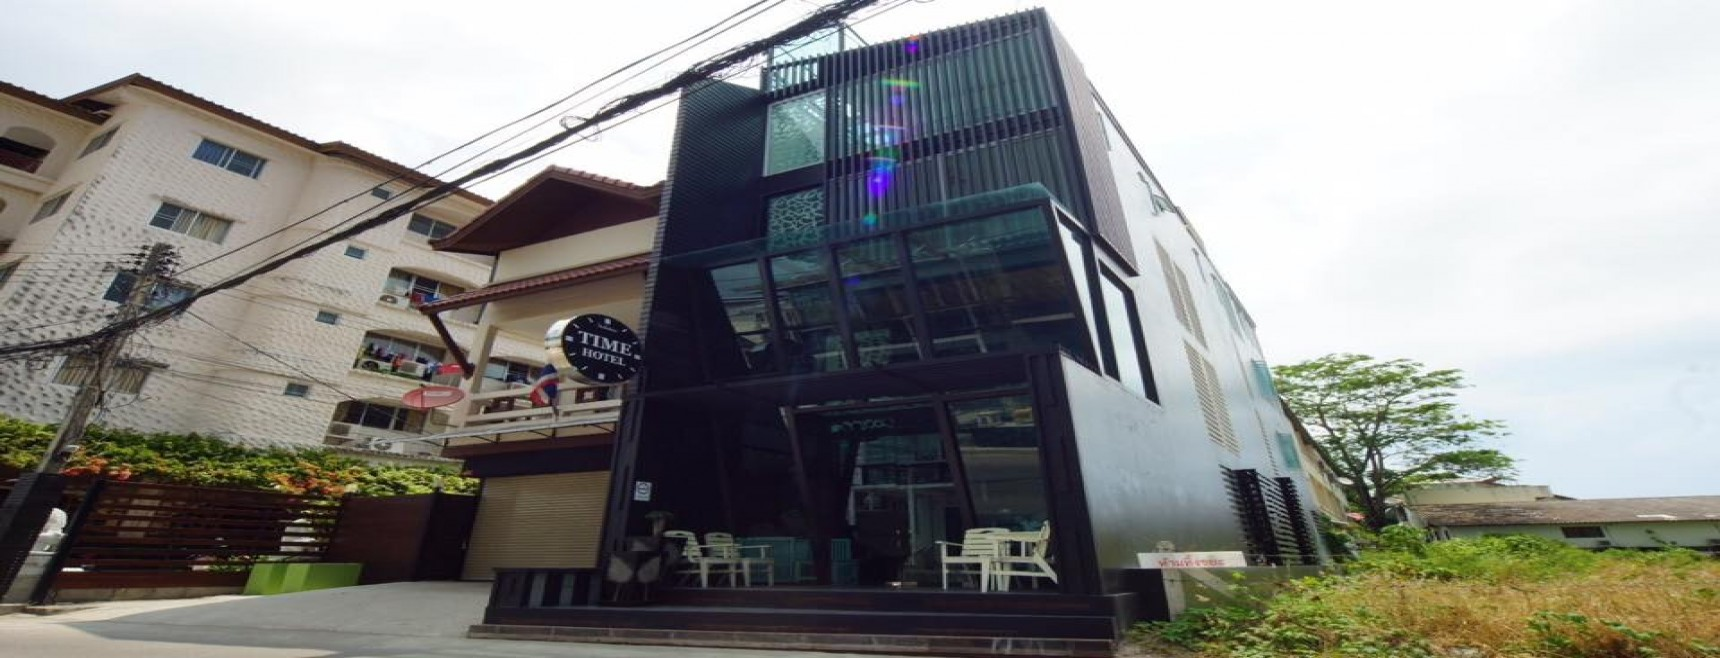 14 Bedroom Hotel For Sale Laem Din, Chaweng (Thai-Real.com)